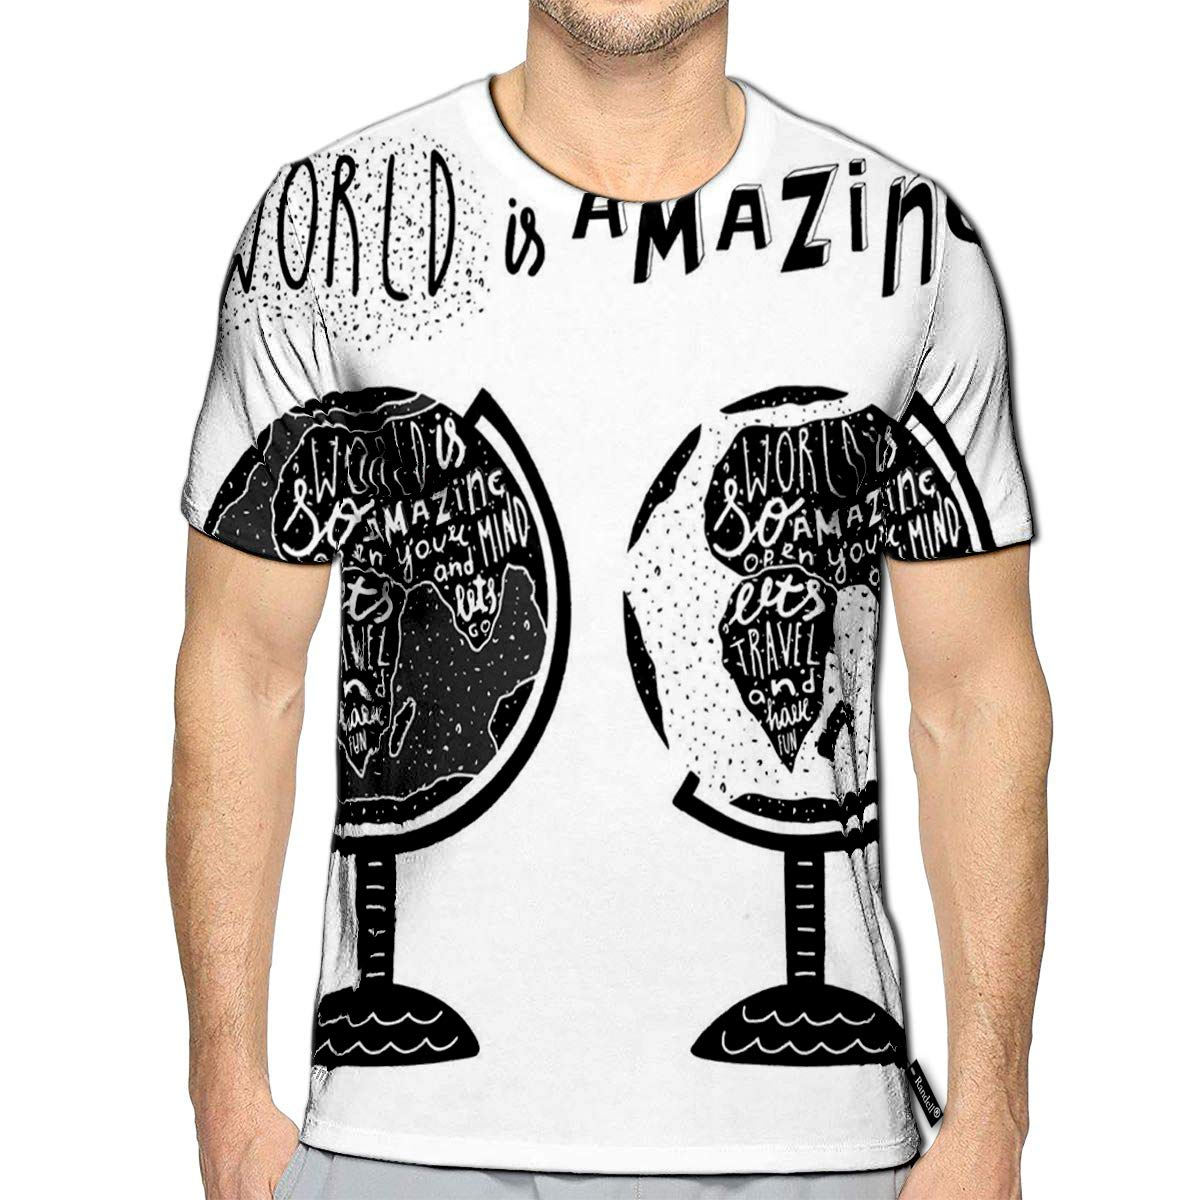 Randell 3D Printed T-Shirts The Biggest Mistake You Could Ever Make is Being to Afraid T